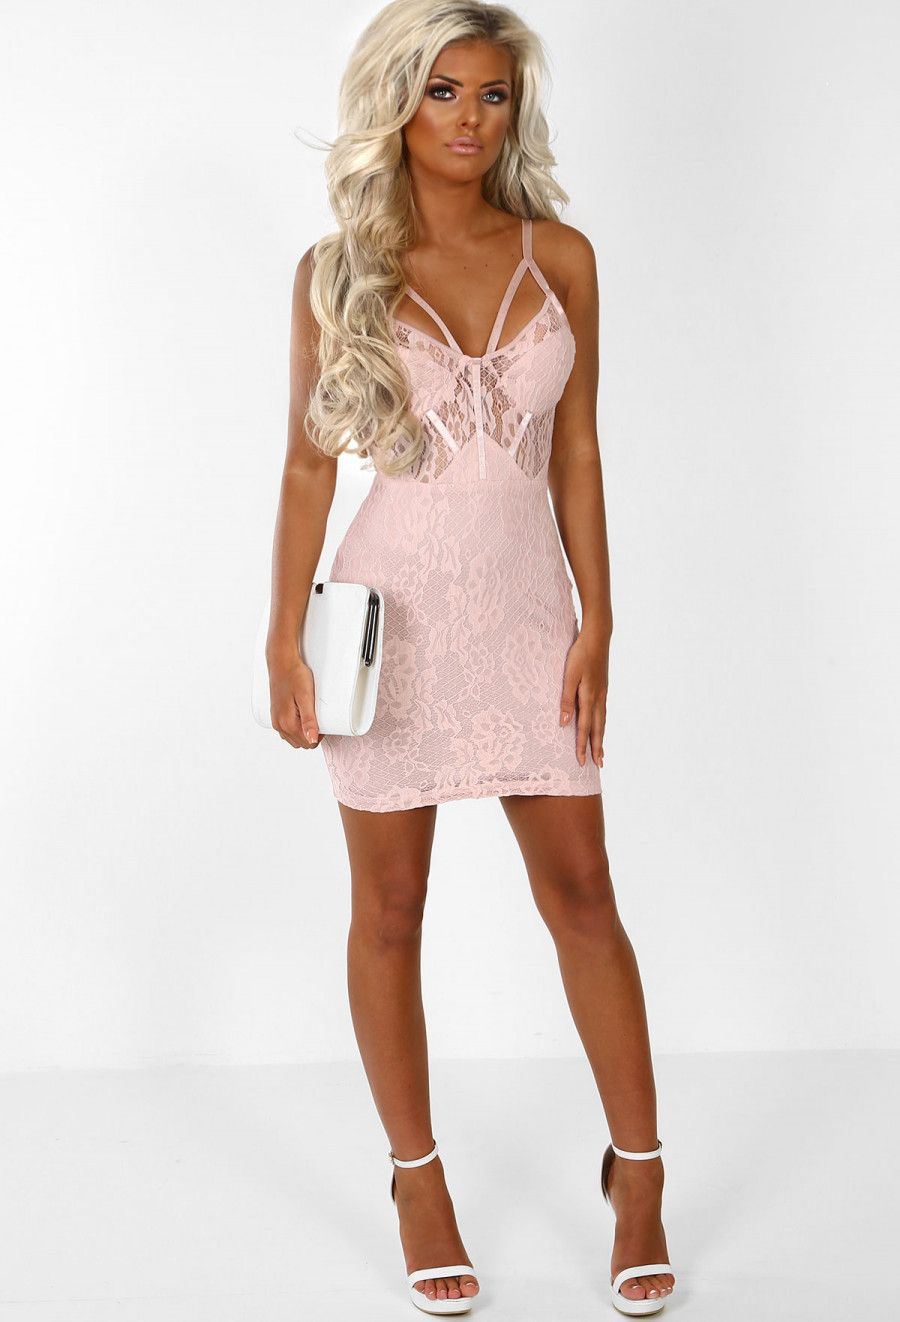 5d0750767d537 All That Glamour Pink Lace Bodycon Mini Dress in 2018 | FORMAL ...